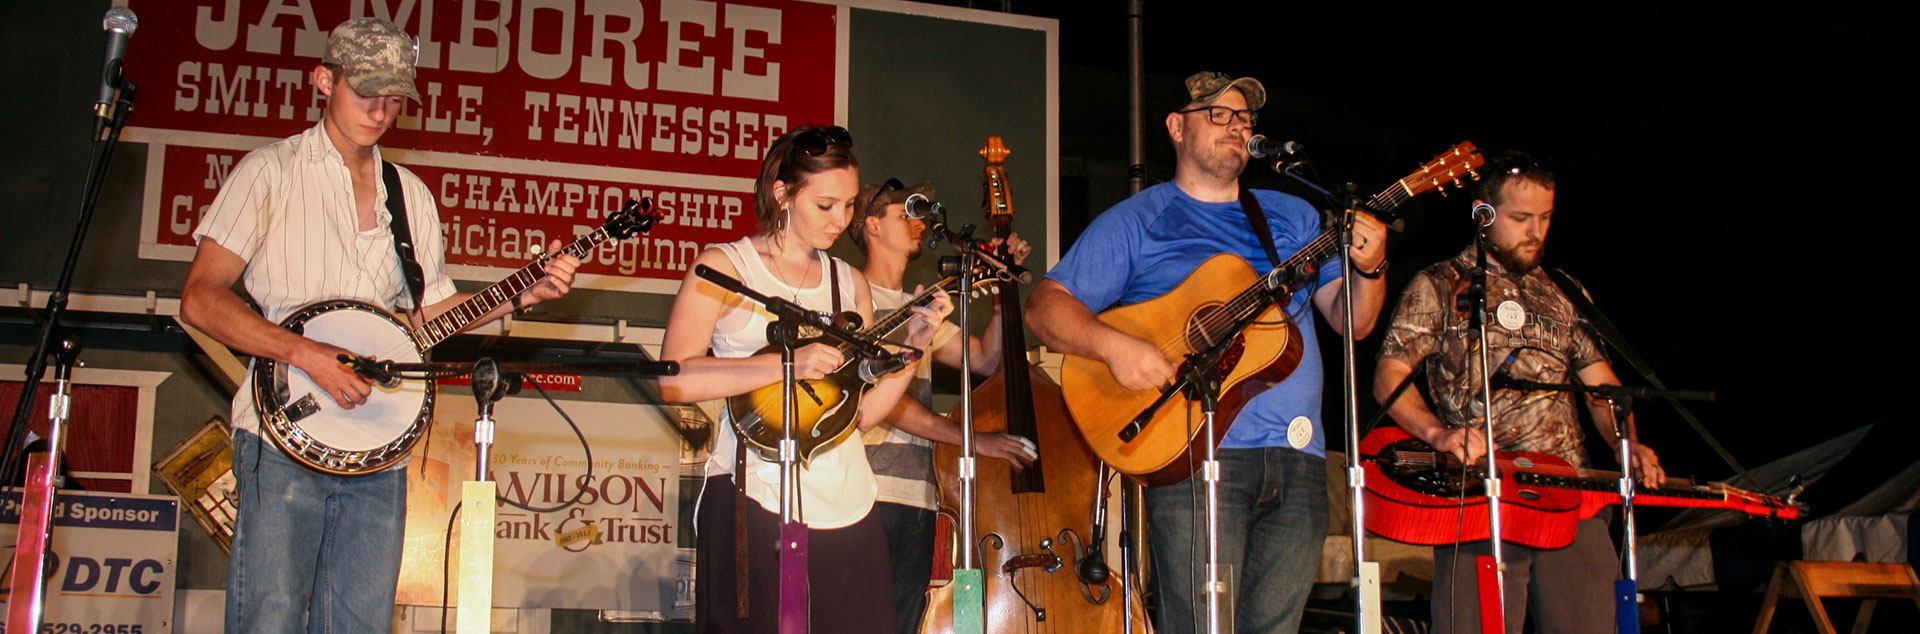 Bluegrass group